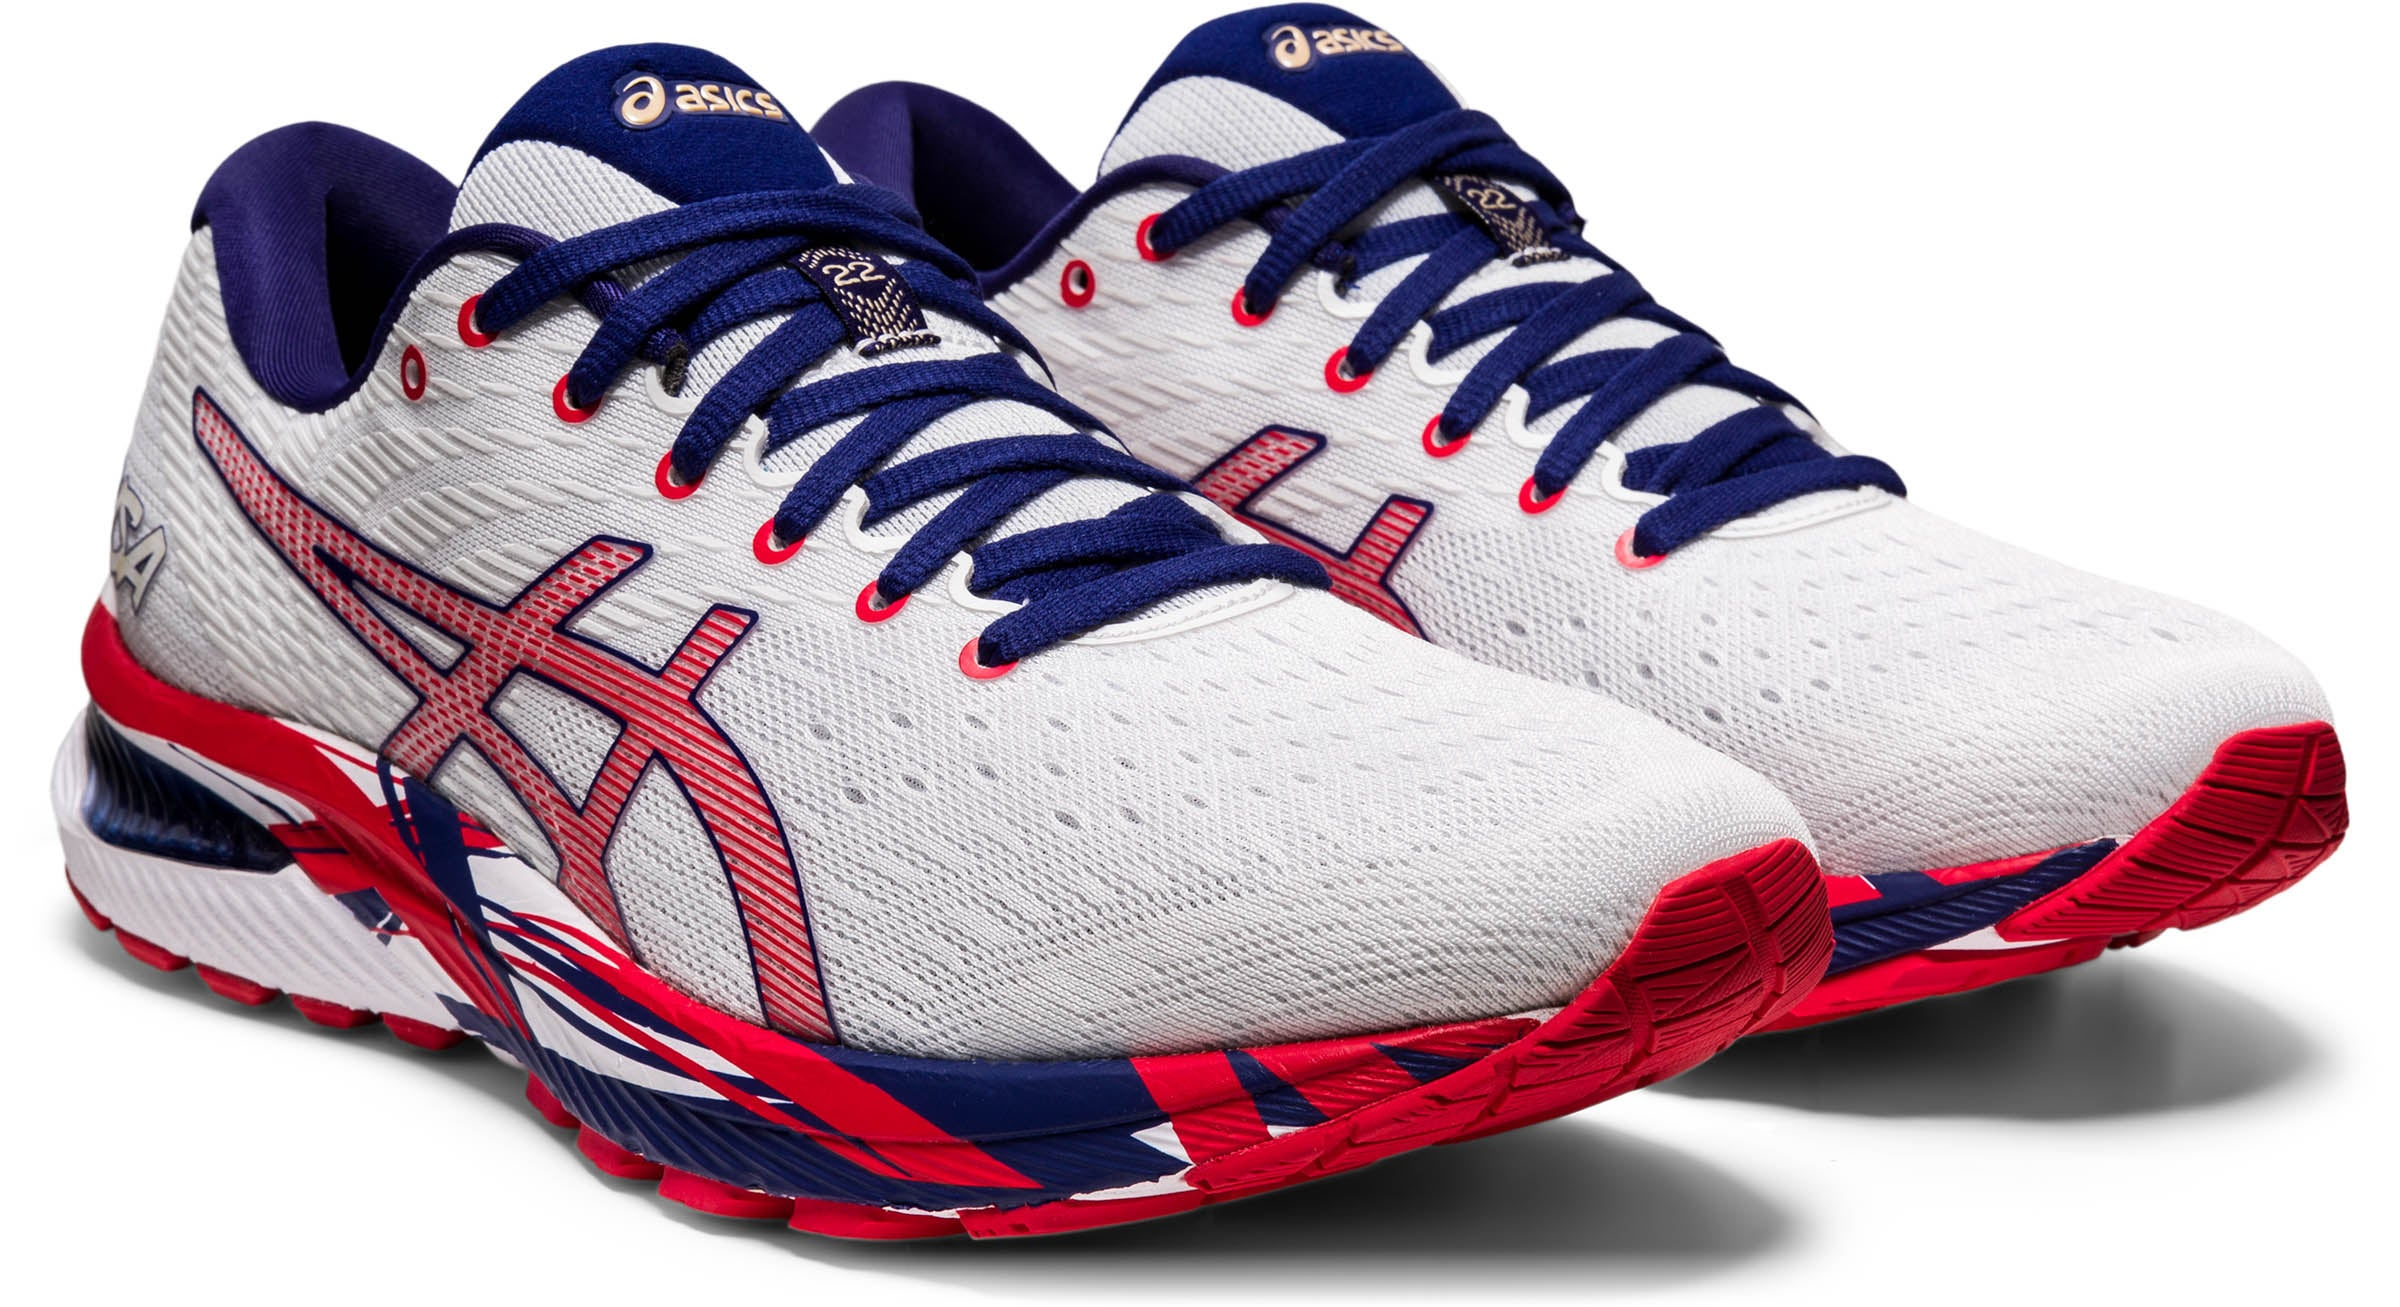 White running shoes with blue laces, red logo, and red and blue soles